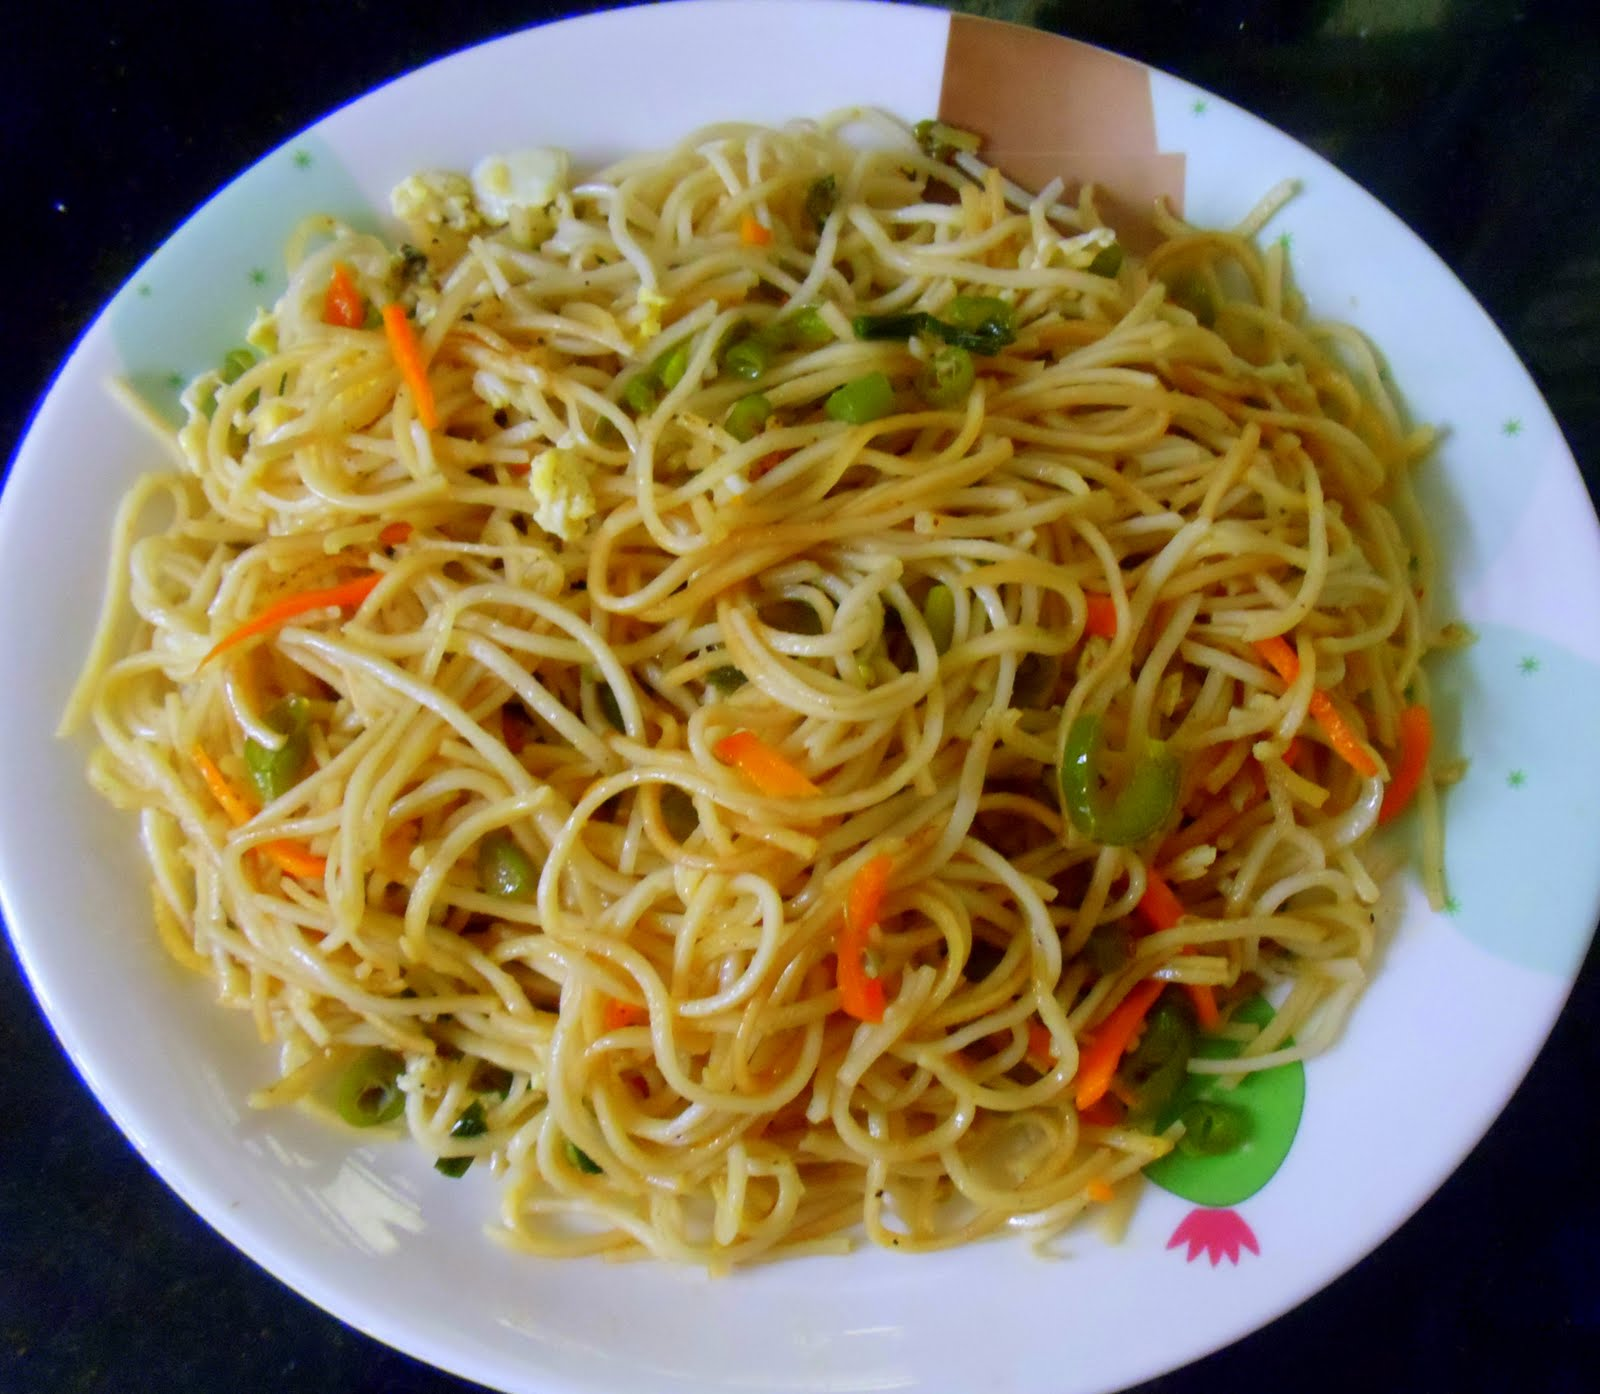 How To Cook Egg Chicken Noodles Weekend Lunch Sorted!!! How To Cook Egg  20151118spaghetticarbonaravickywasik9g